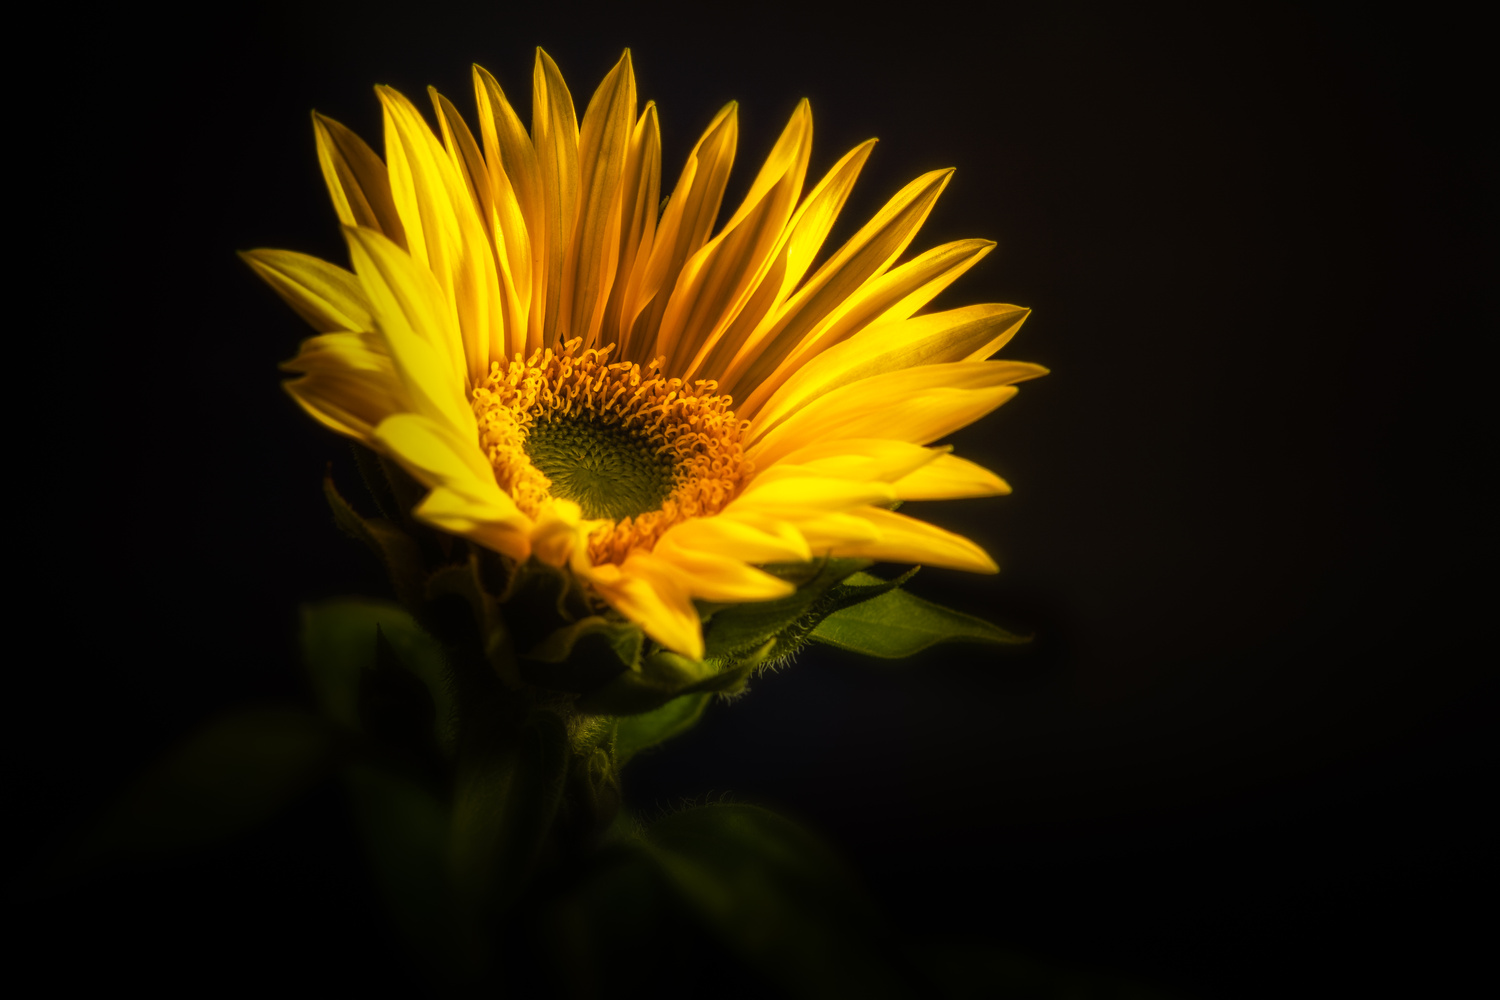 Late Bloomer by Jim Elve